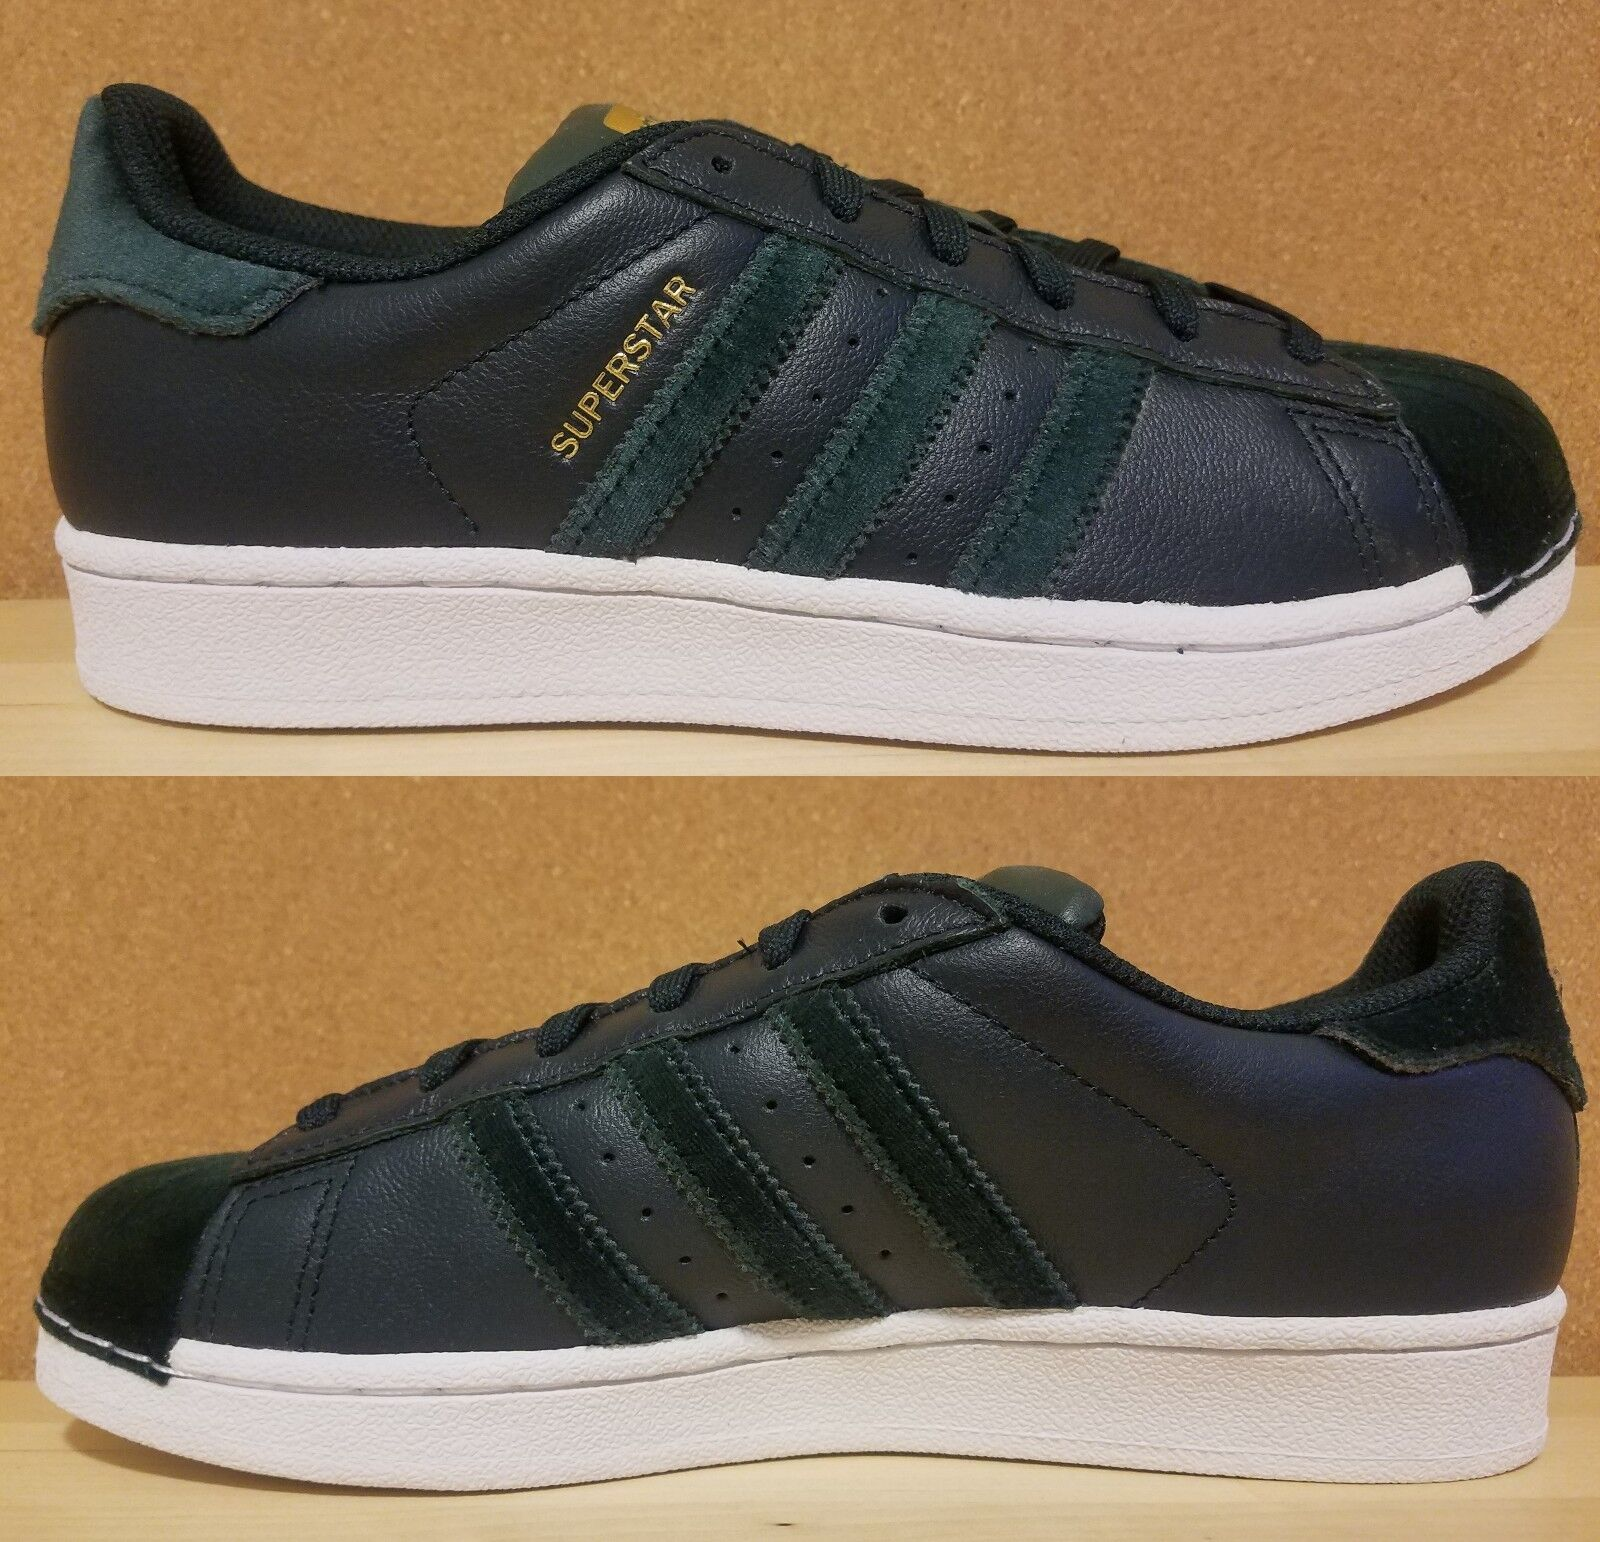 ADIDAS SUPERSTAR ORIGINAL WOMEN's CASUAL LEATHER GREEN - WHITE AUTHENTIC SIZE 7